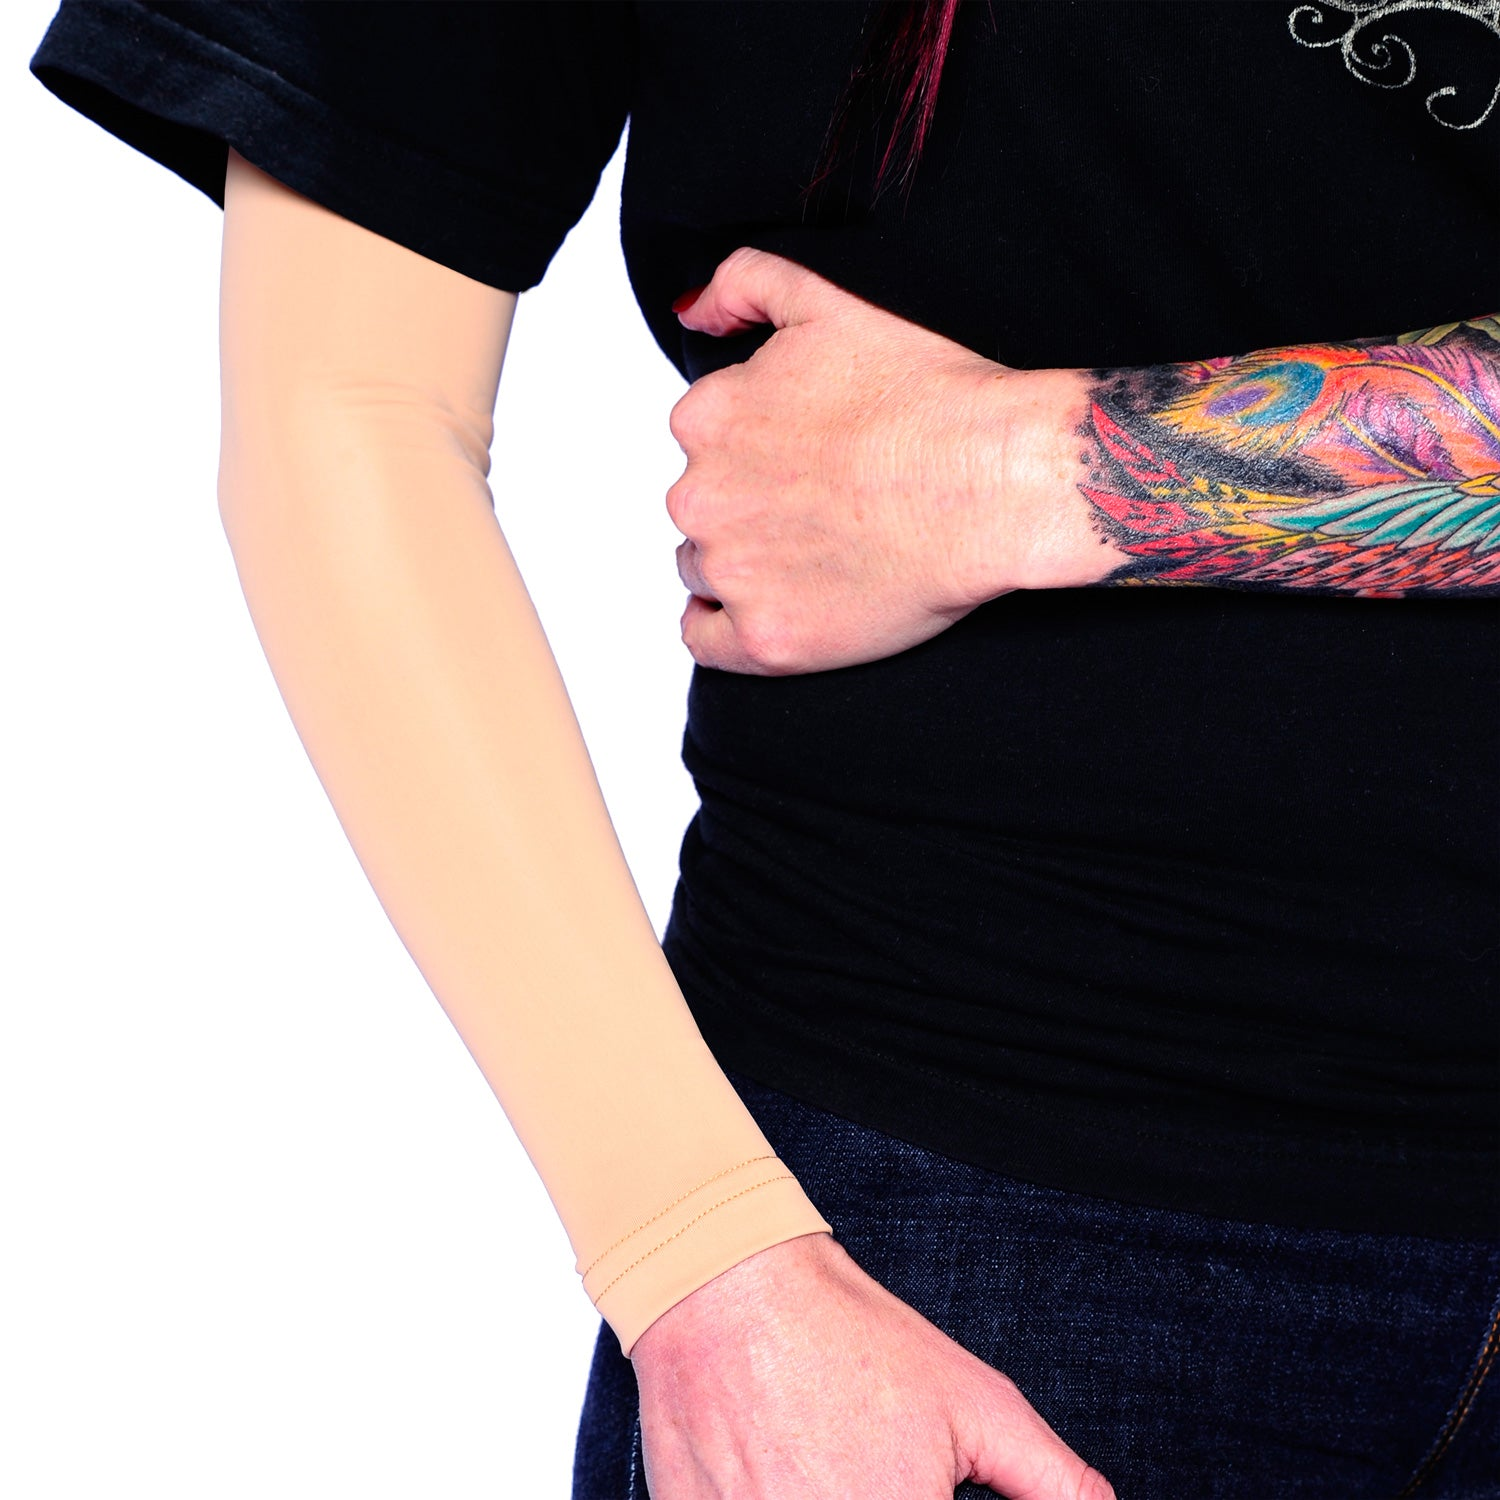 Light Tattoo Sleeve: Full Arm Flesh Colored Sleeves To Cover Tattoos